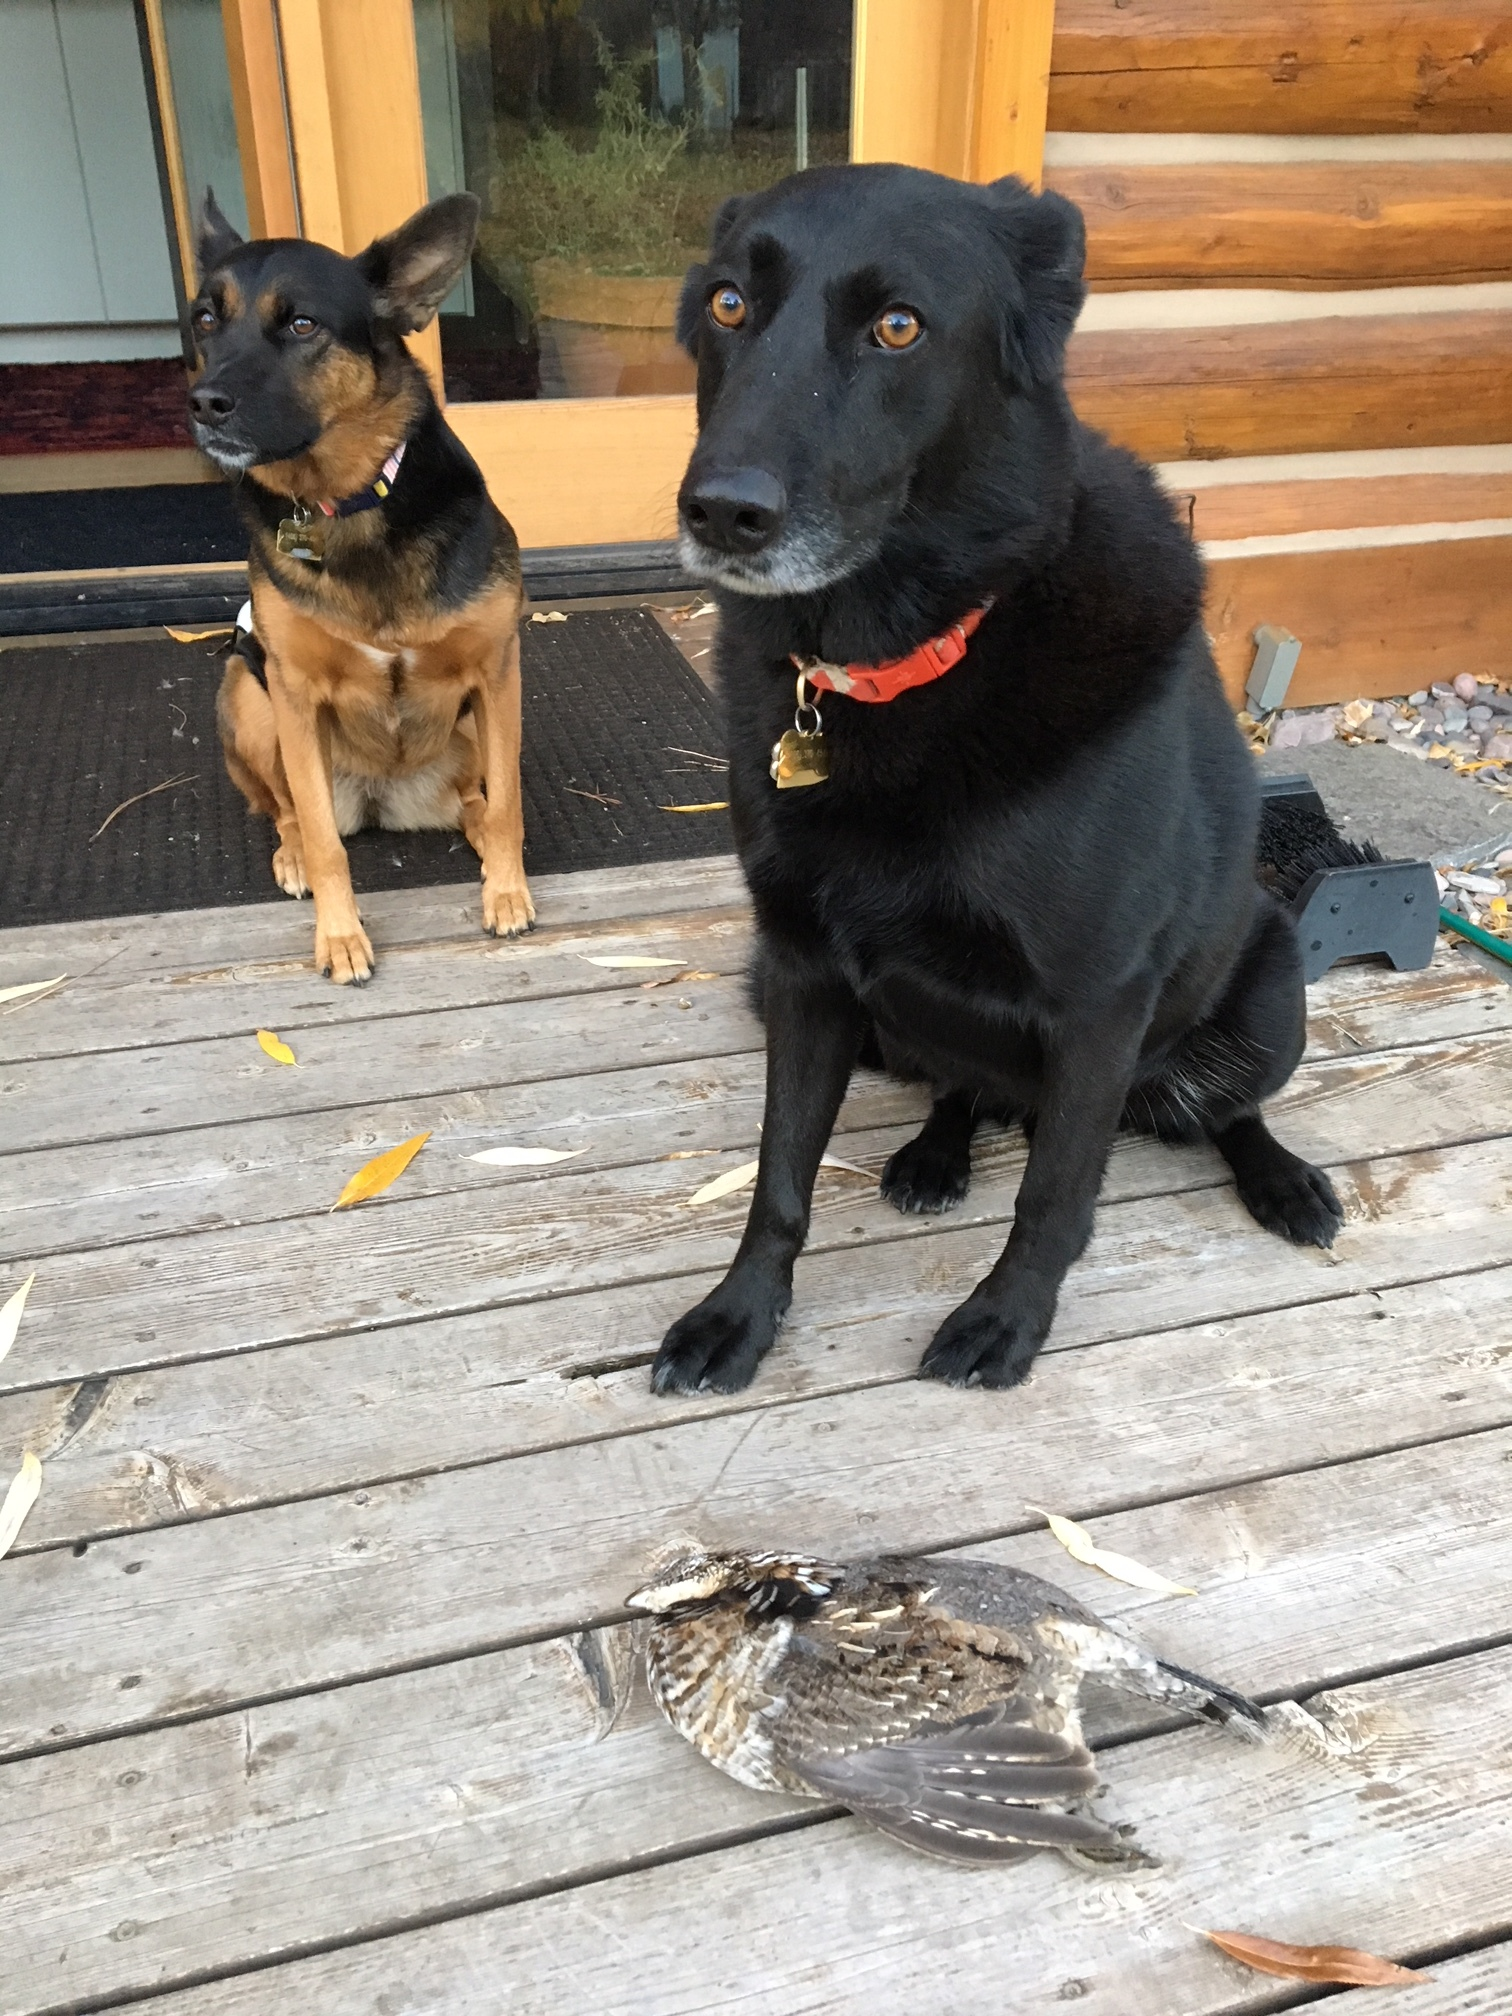 Our dogs Gus and Pika looking hilariously unsure of what they'd done: they saw a grouse feeding in the yard with our chickens last week, and ran out and killed it. We brined it and had our second-dog-killed grouse dinner.Delicious!